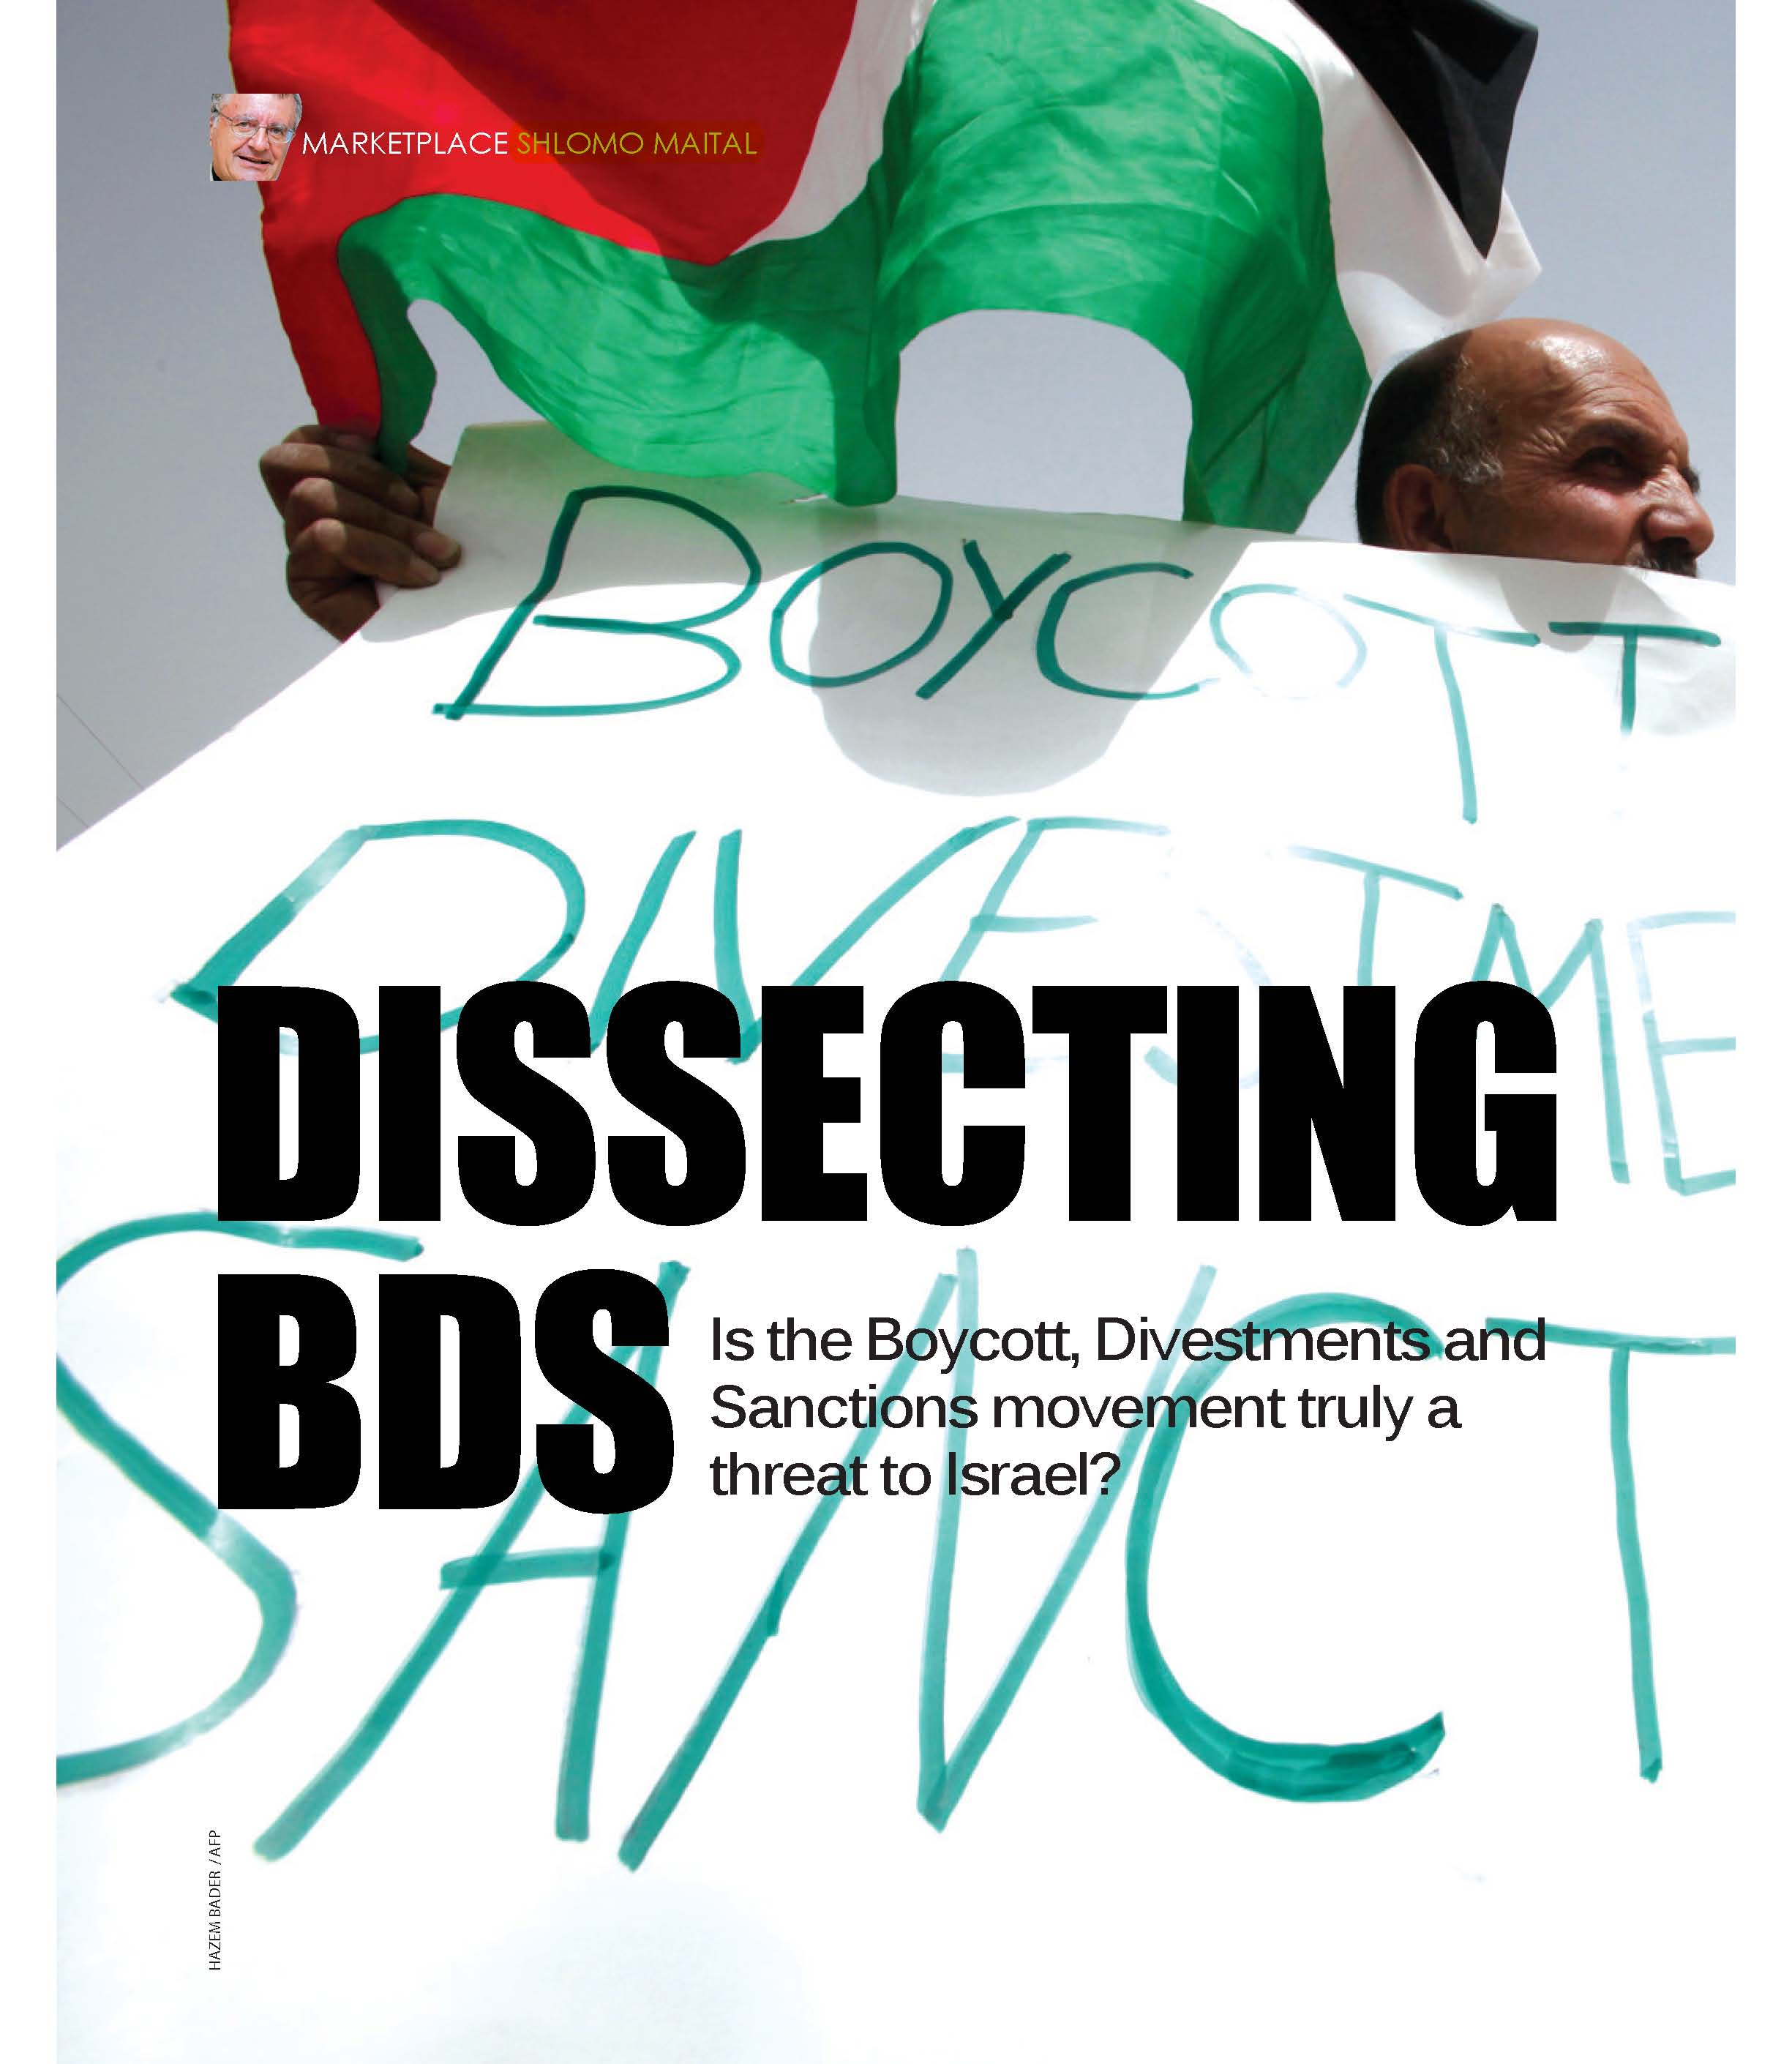 Dissecting BDS